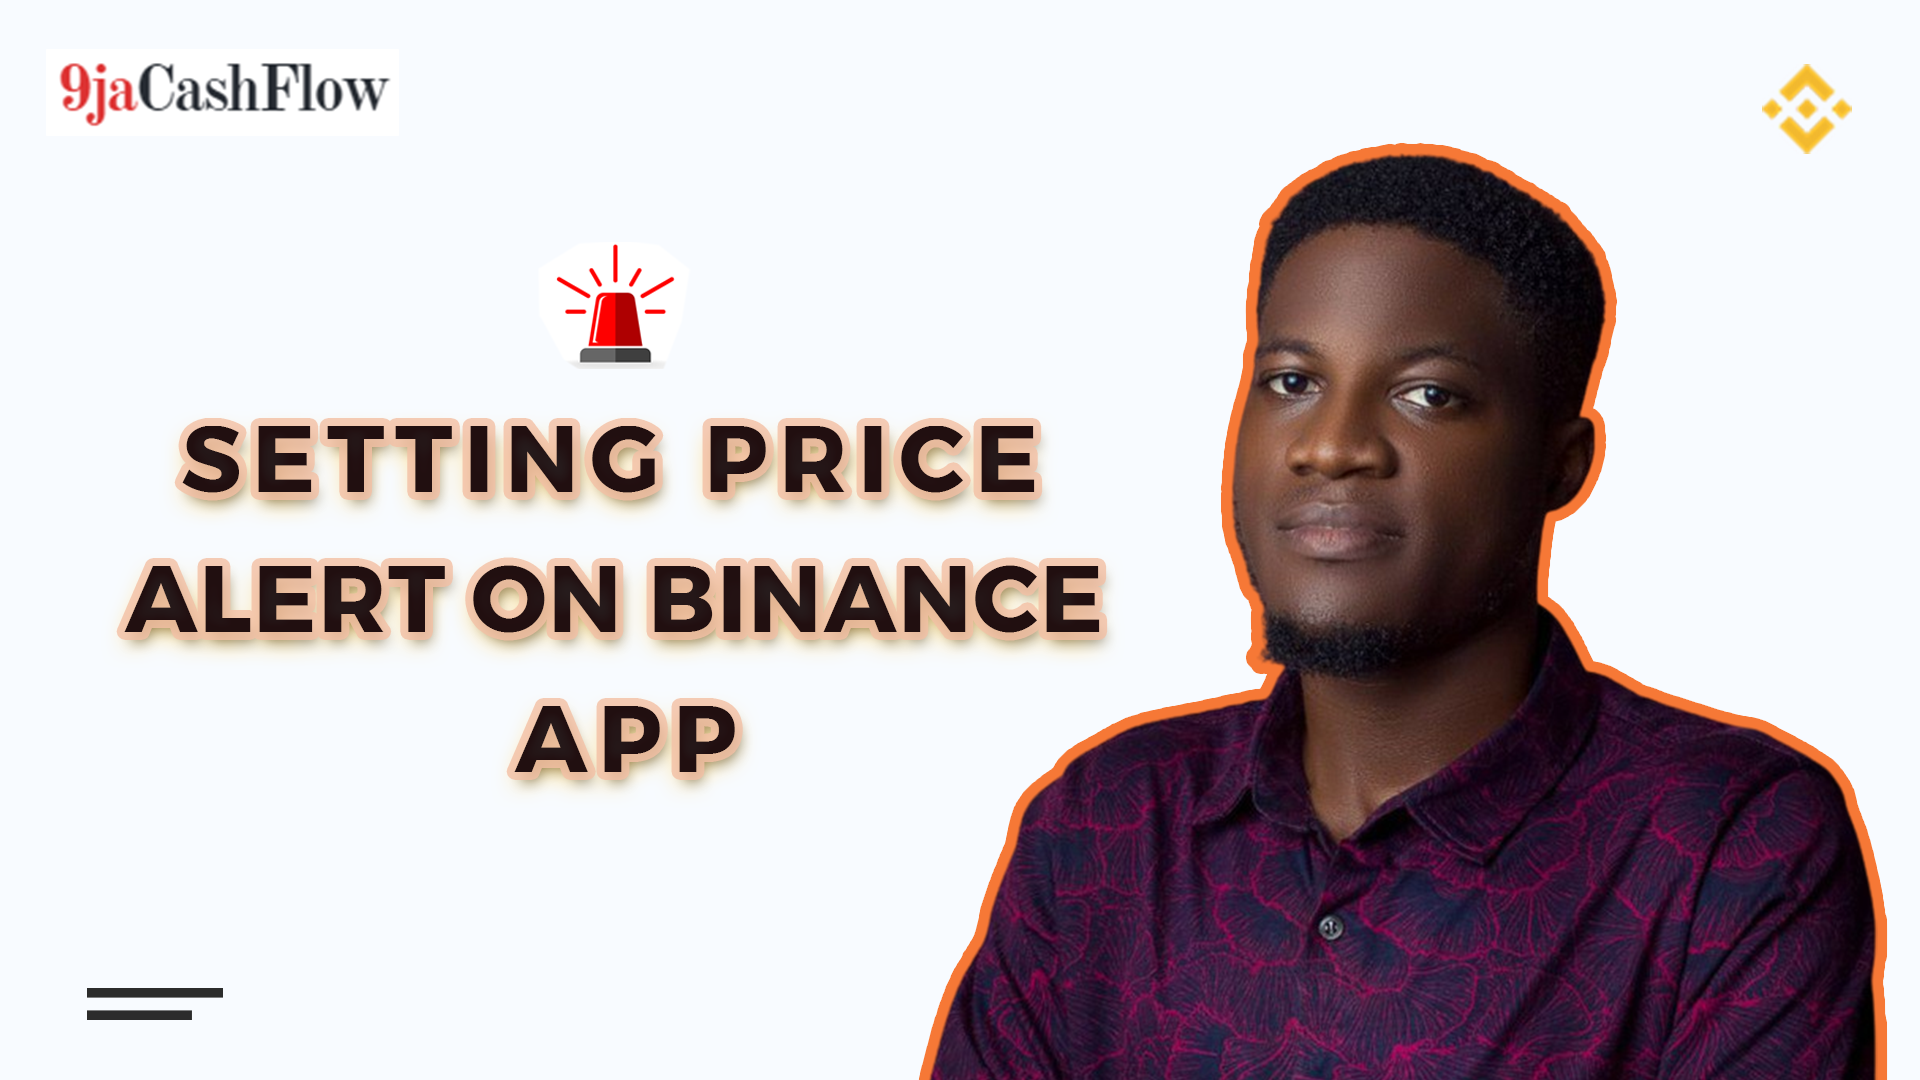 Price Alert on Binance